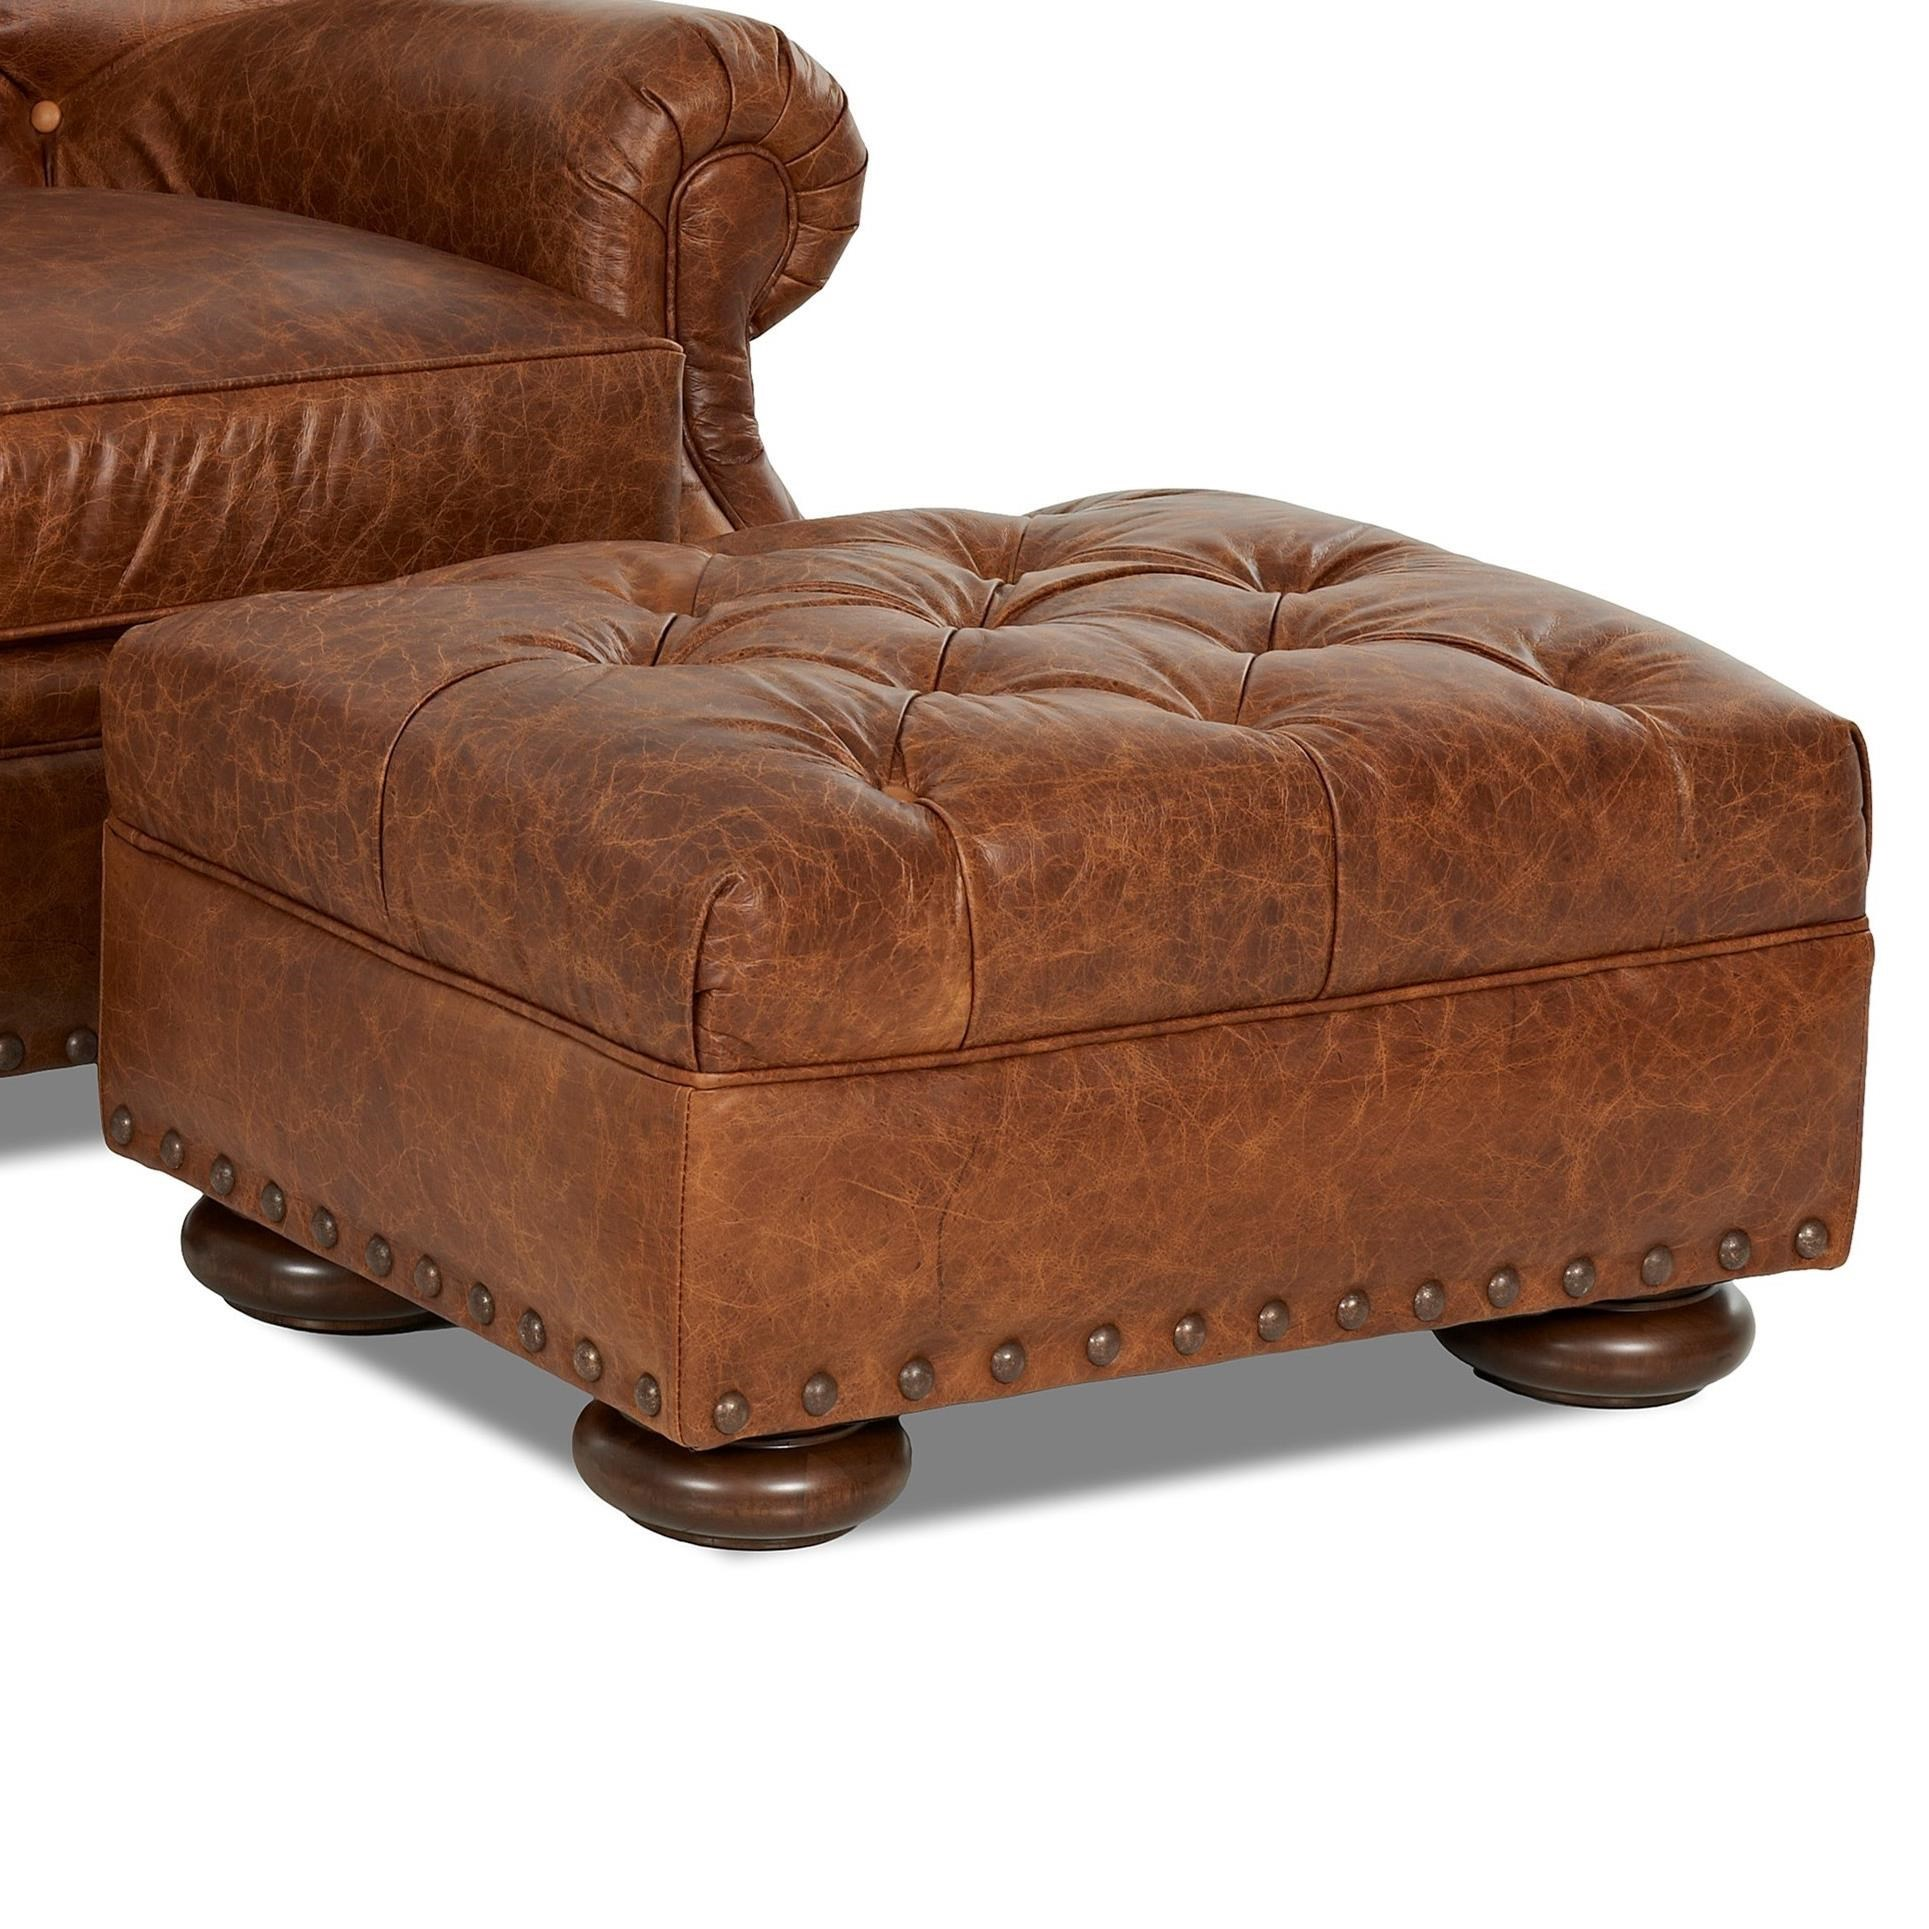 Klaussner Aspen Tufted Leather Ottoman with